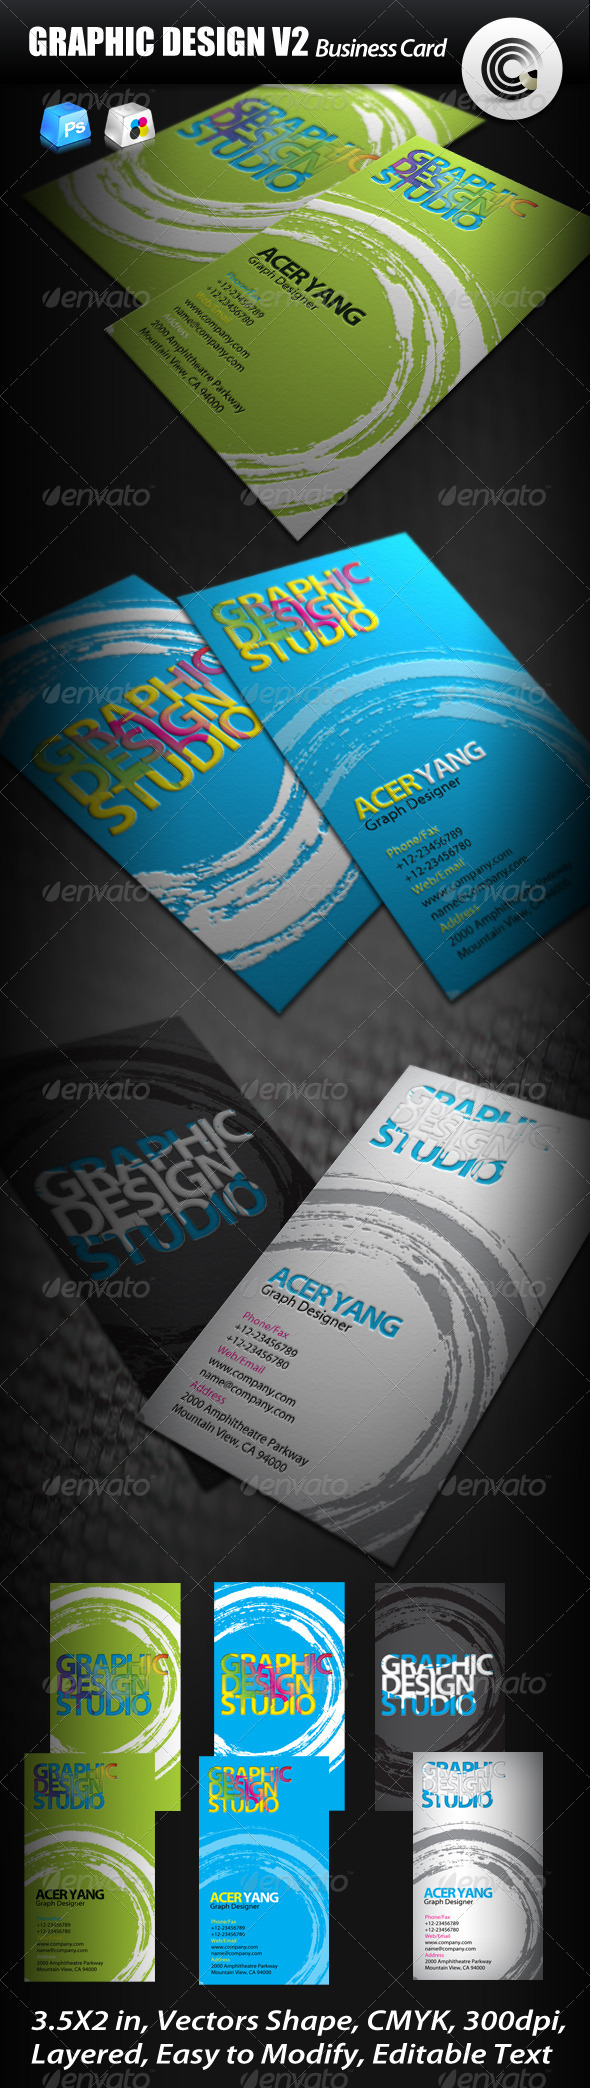 Graphic Design Studio Business Card - Creative Business Cards